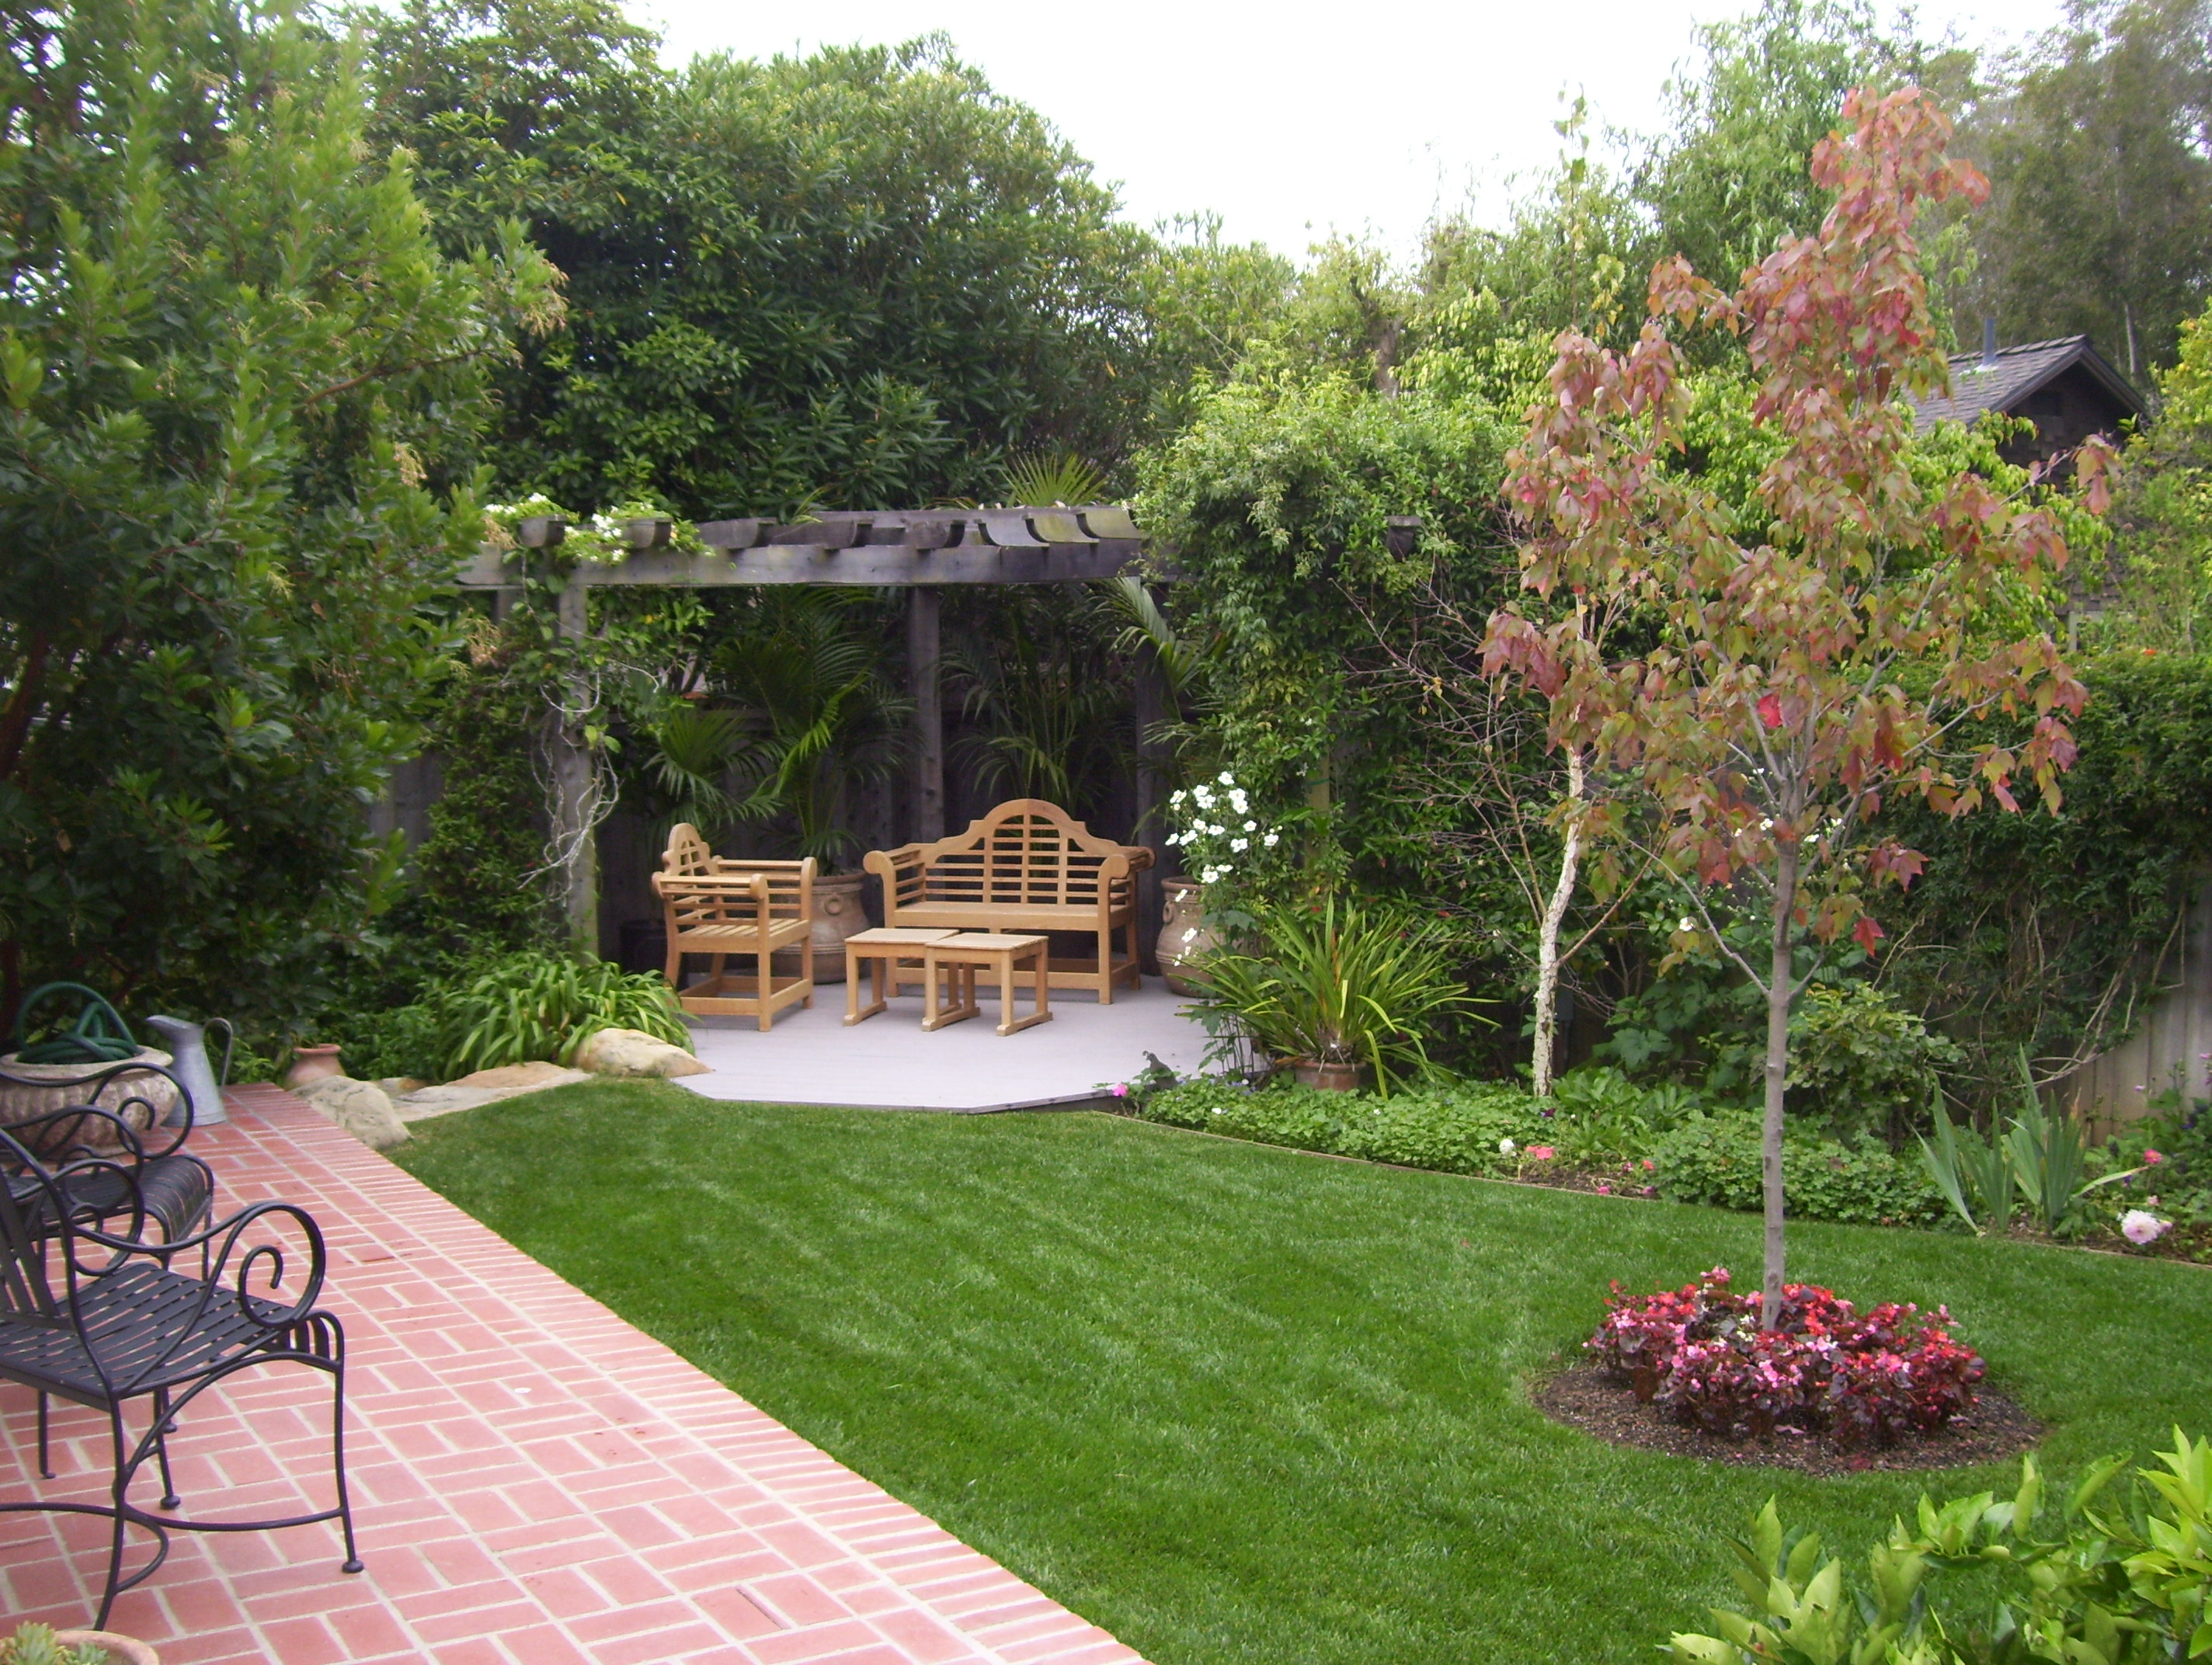 Backyard landscaping ideas santa barbara down to earth for Outdoor garden ideas